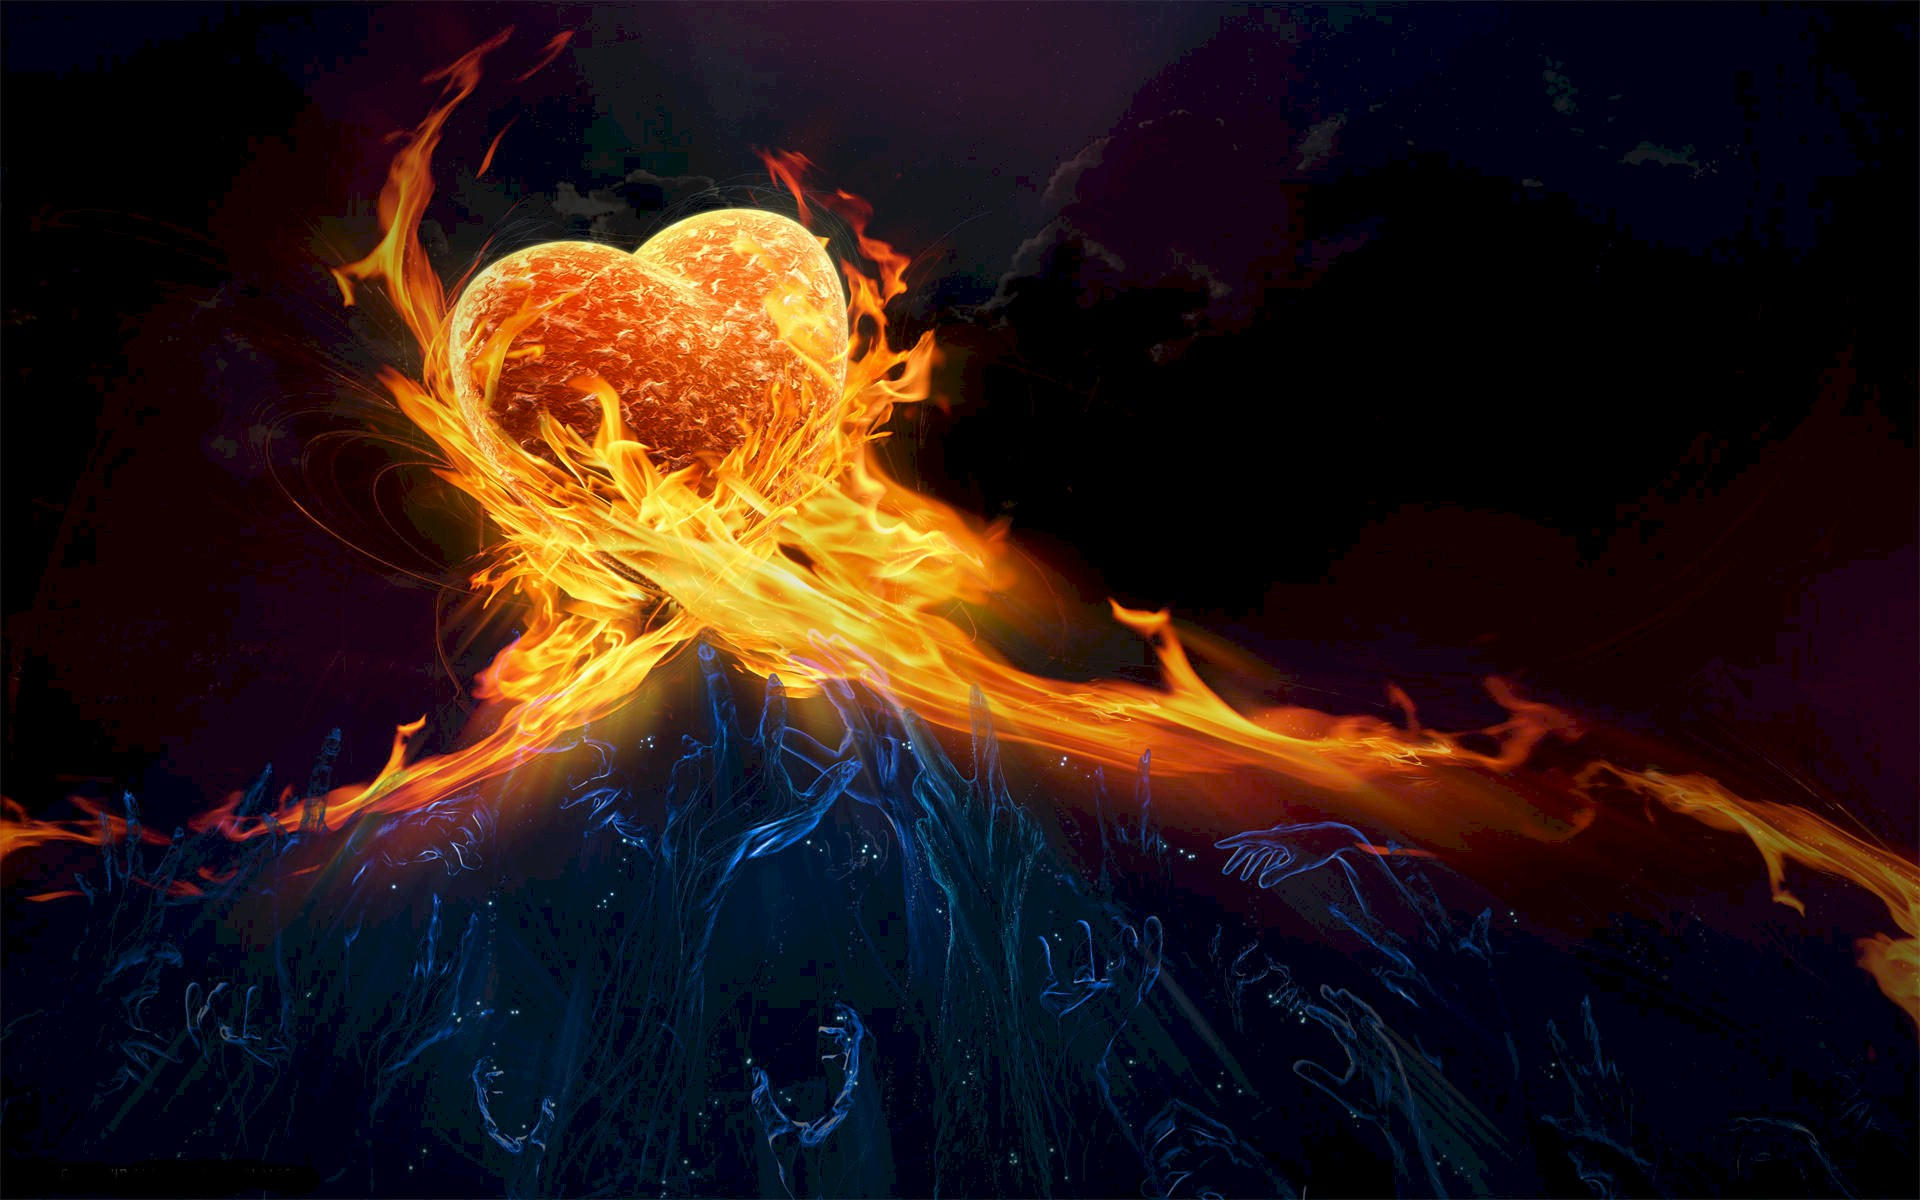 HEART ON FIRE ABSTRACT WITH HANDS.jpg